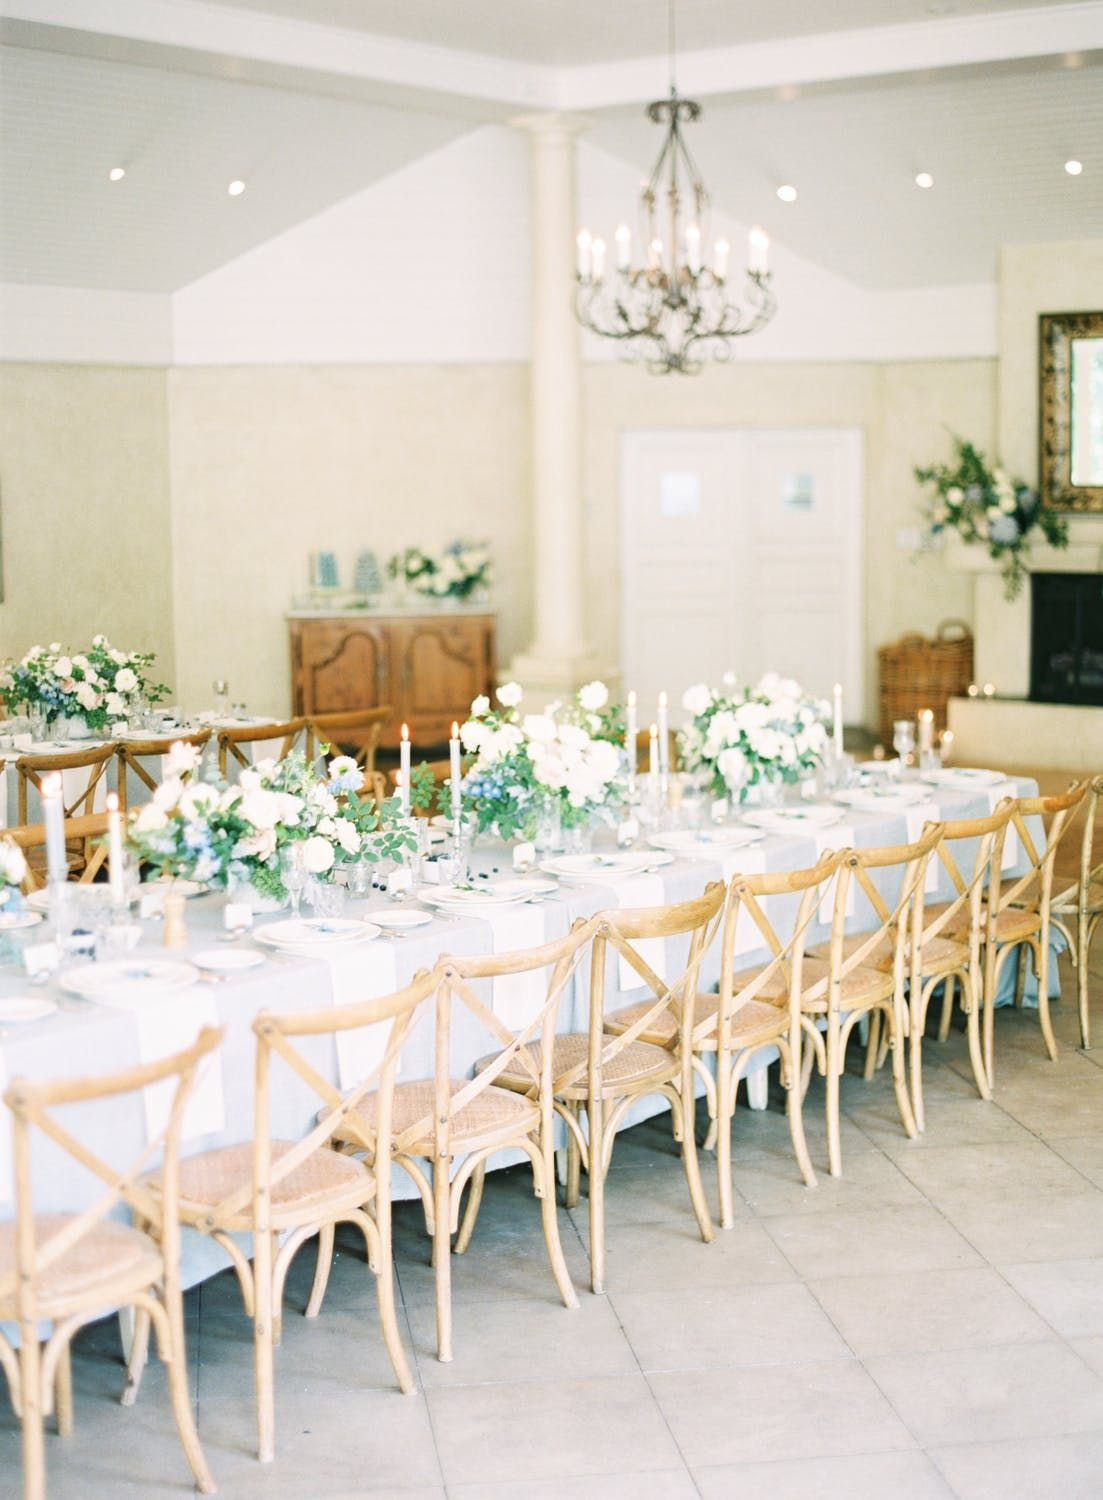 Wedding room decoration ideas 2018  Magical Garden Wedding at Milton Park Country House in Australia